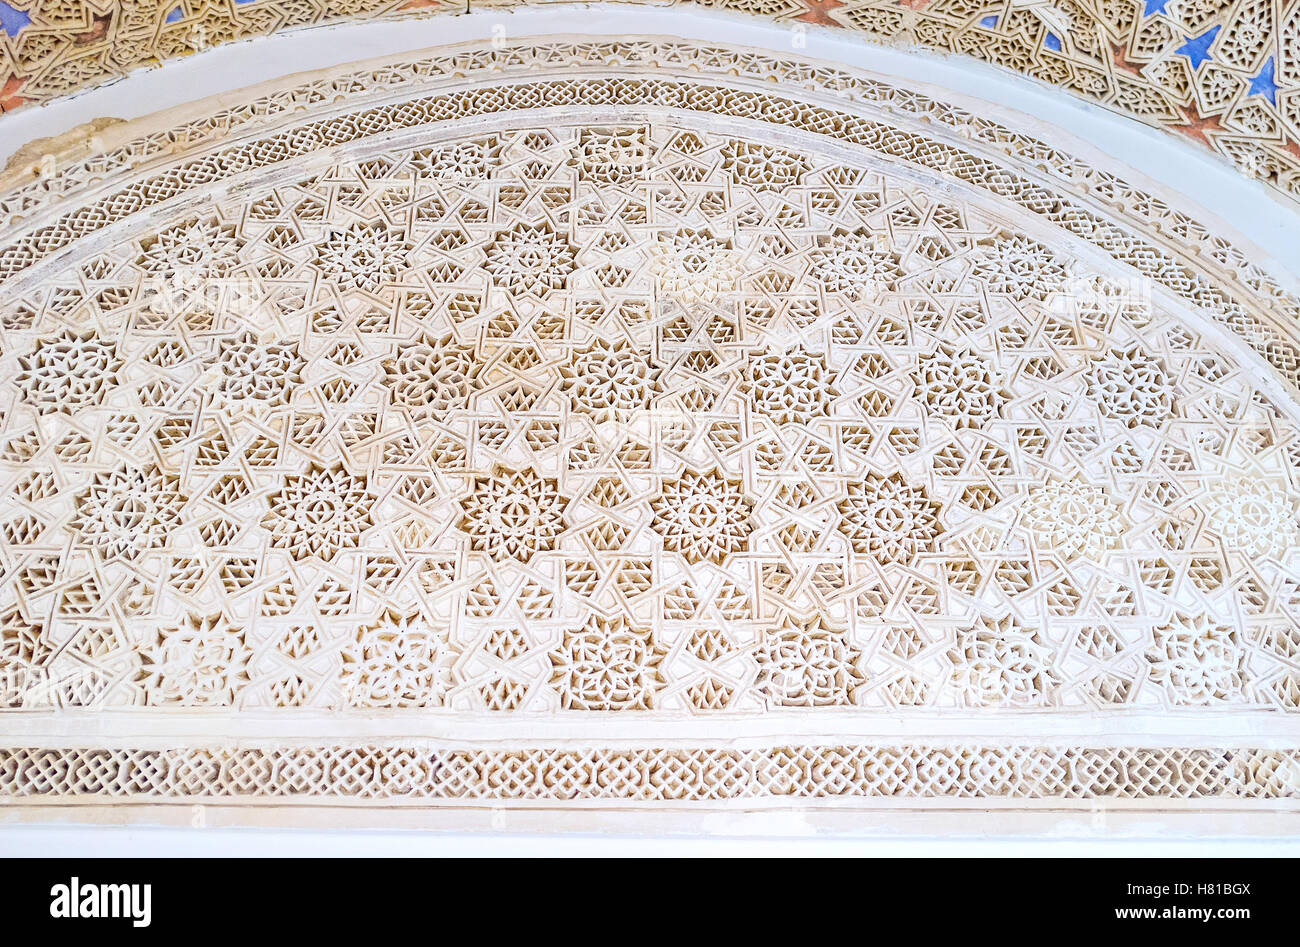 The Bardo National Museum occupies the medieval Hafsid Palace with preserved arabic interior decors, Tunis Stock Photo